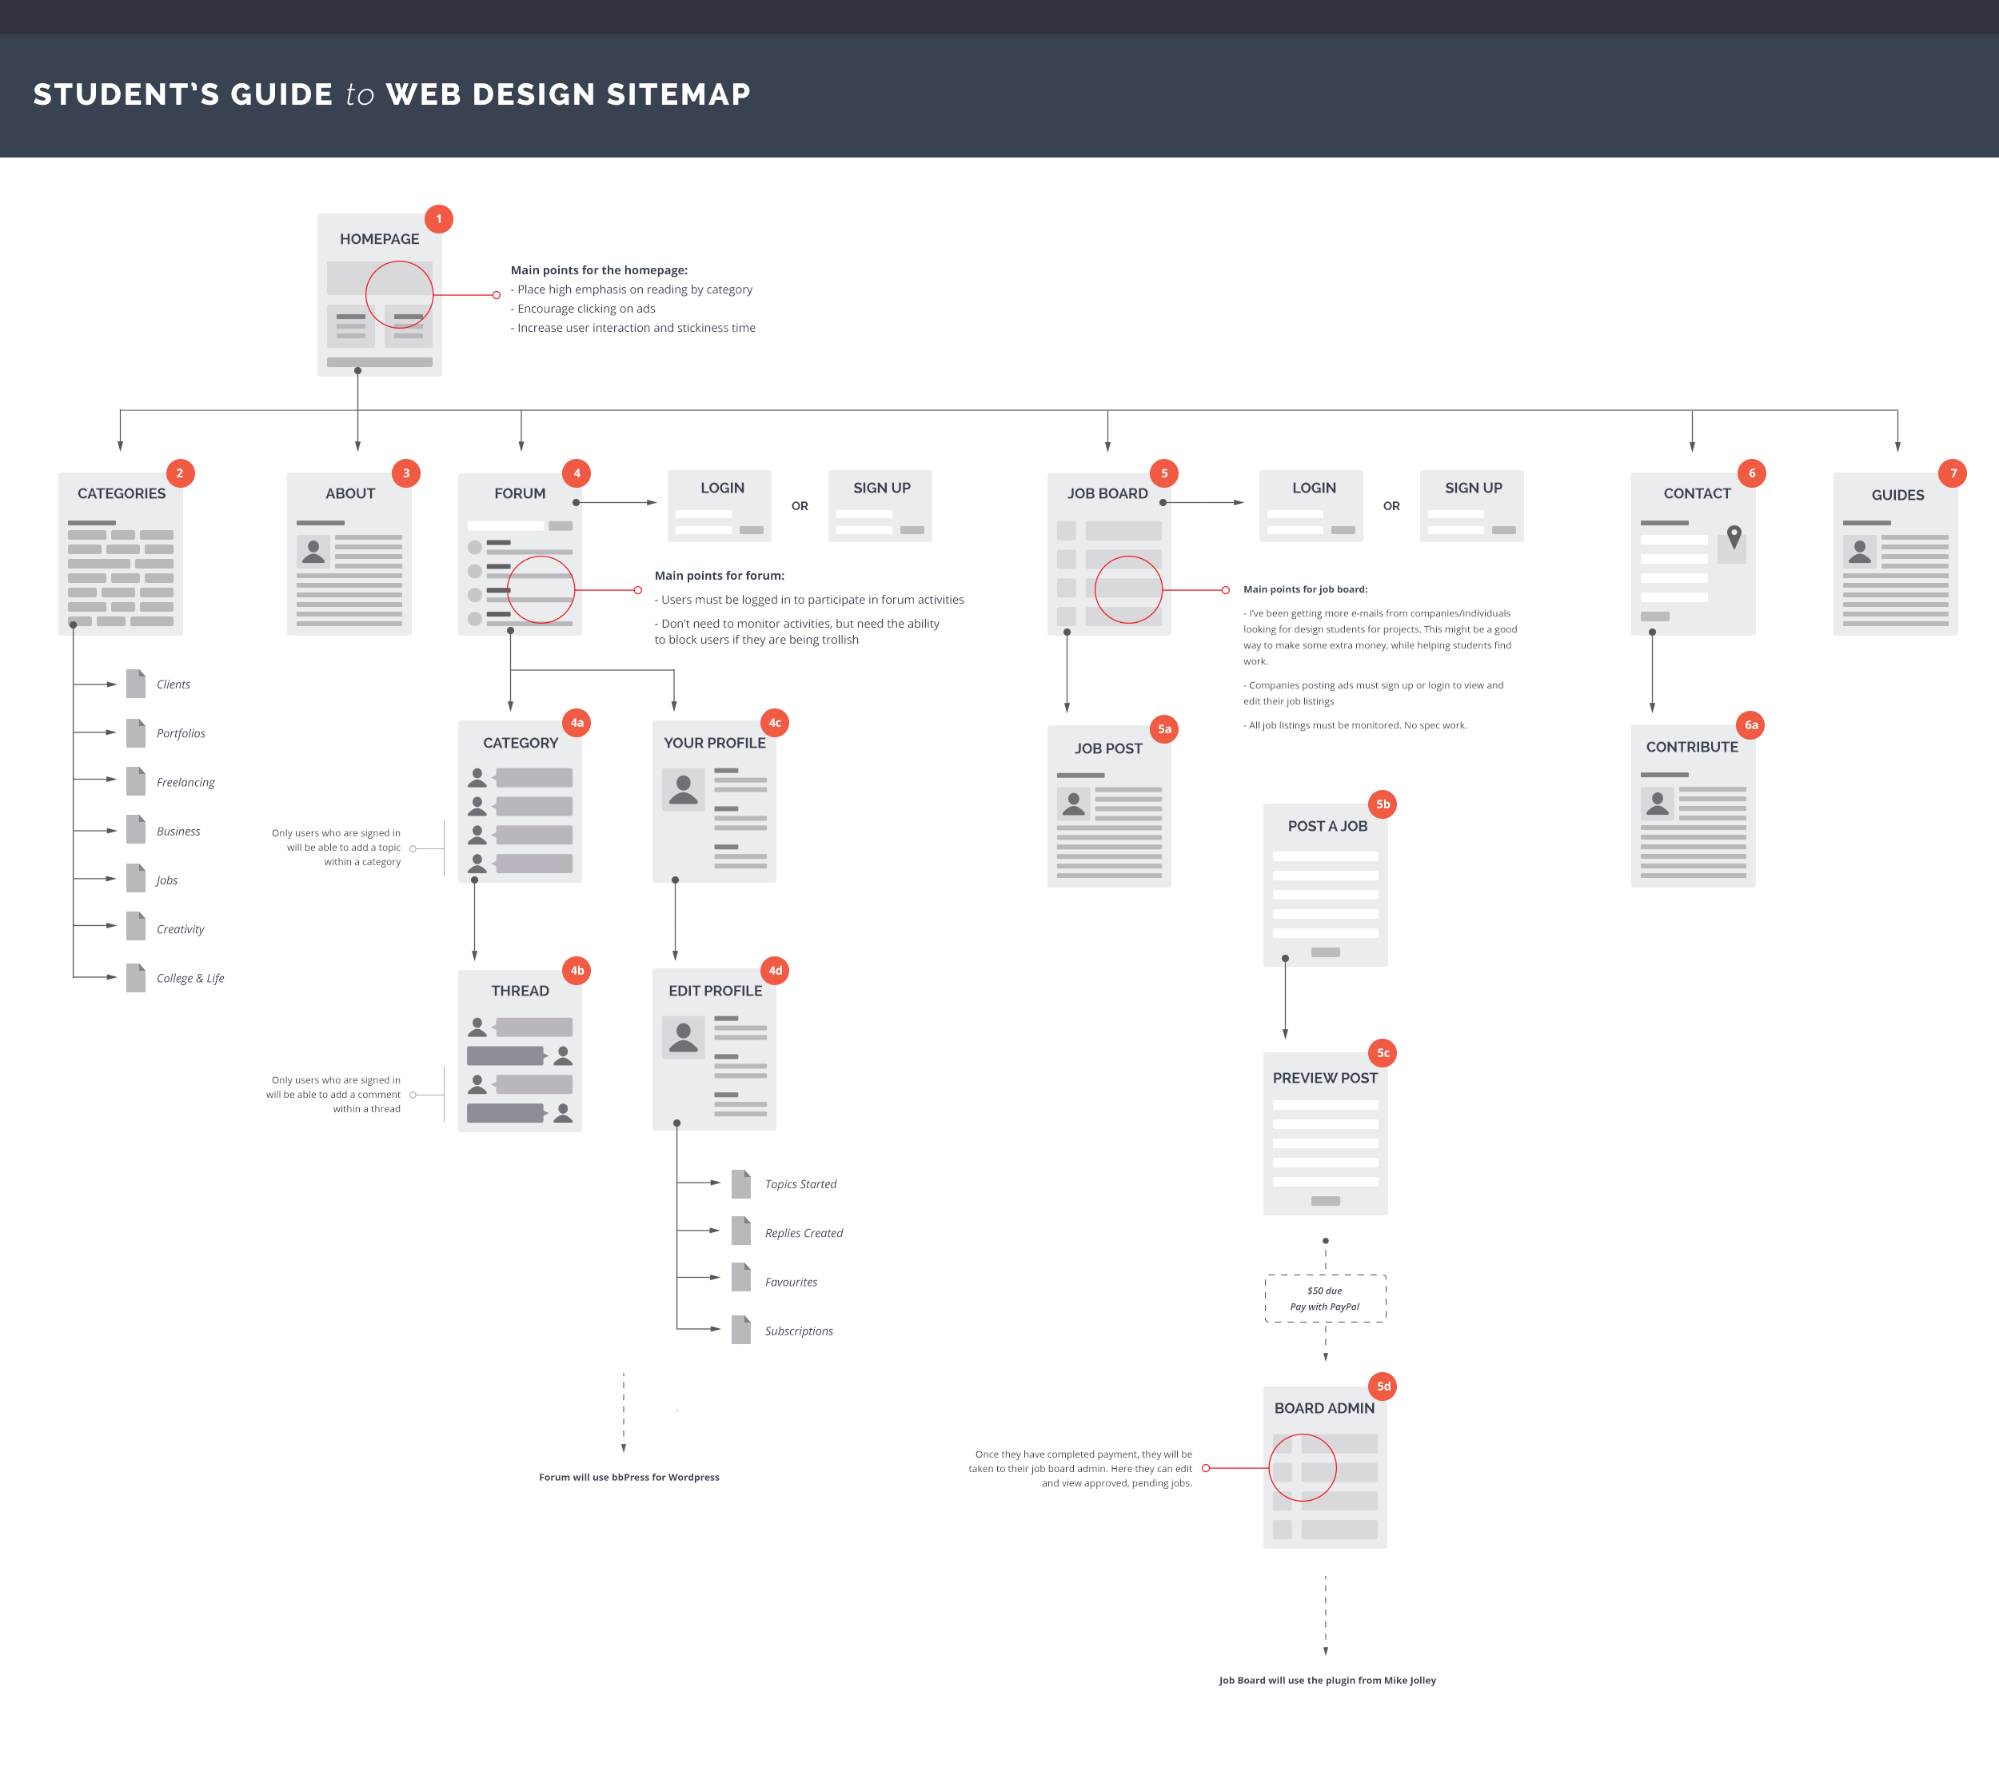 Student's Guide to Web Design sitemap by Janna Hagan